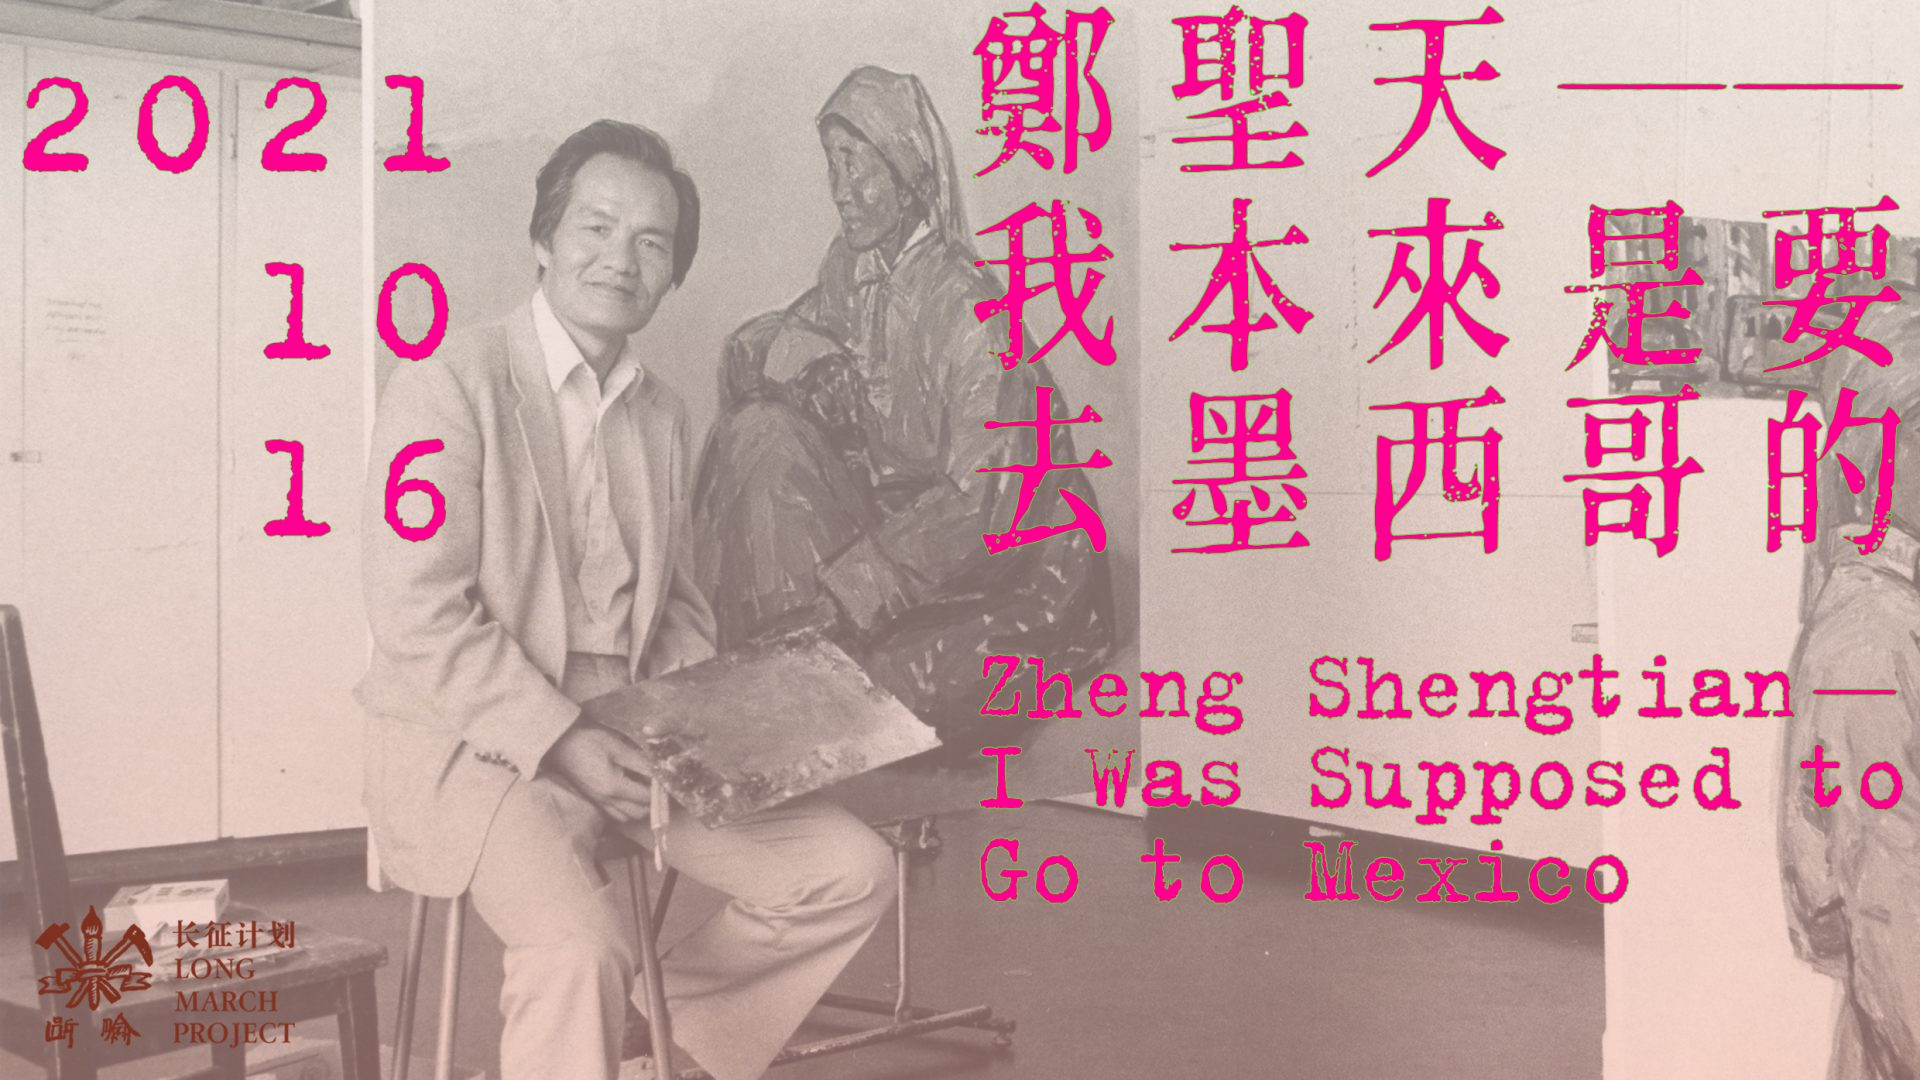 Zheng Shengtian—I Was Supposed to Go to Mexico